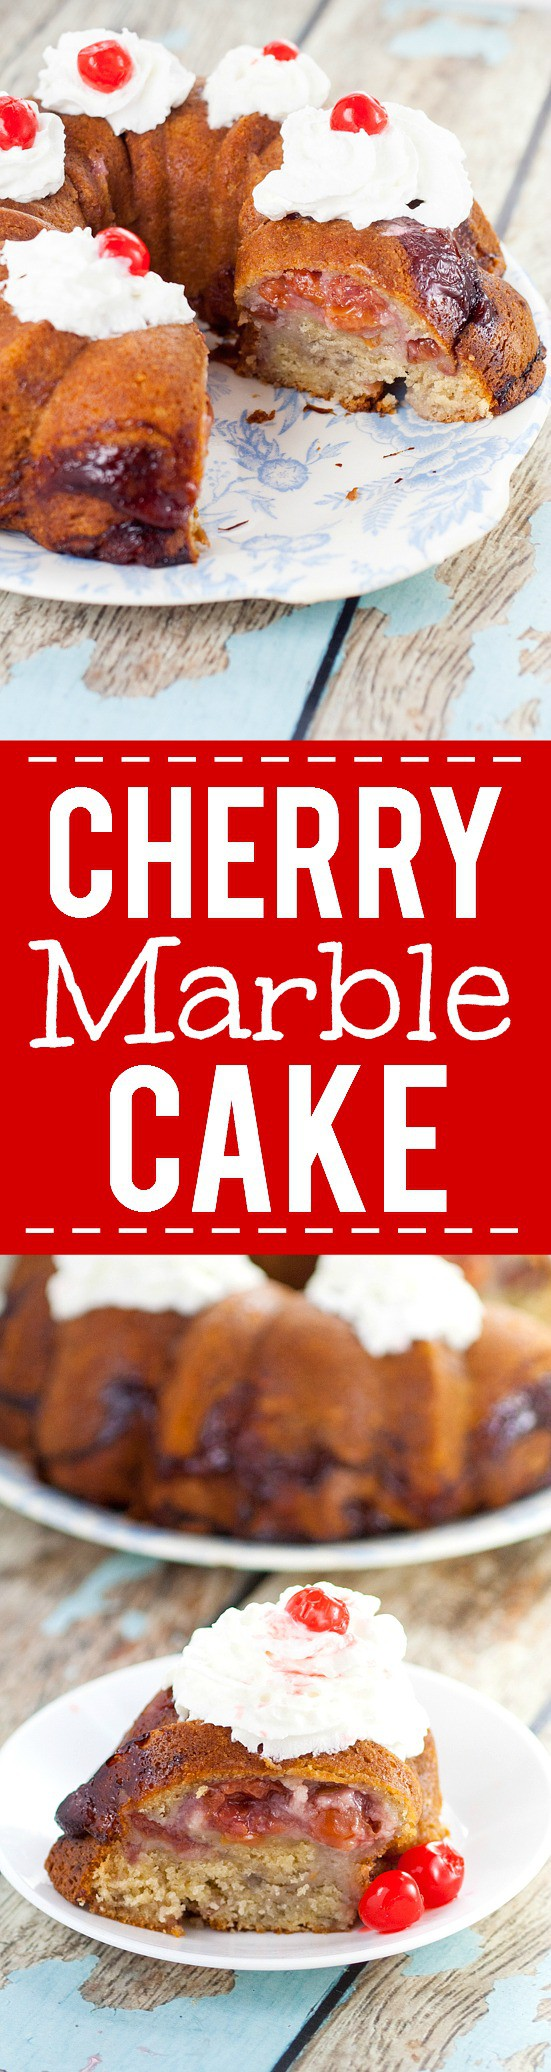 Cherry Marble Cake Recipe - Simple and quick prep, this pretty and sweet Cherry Marble Cake recipe tastes like pound cake with a fresh swirl of tangy cherries. Top with whipped cream & cherry.